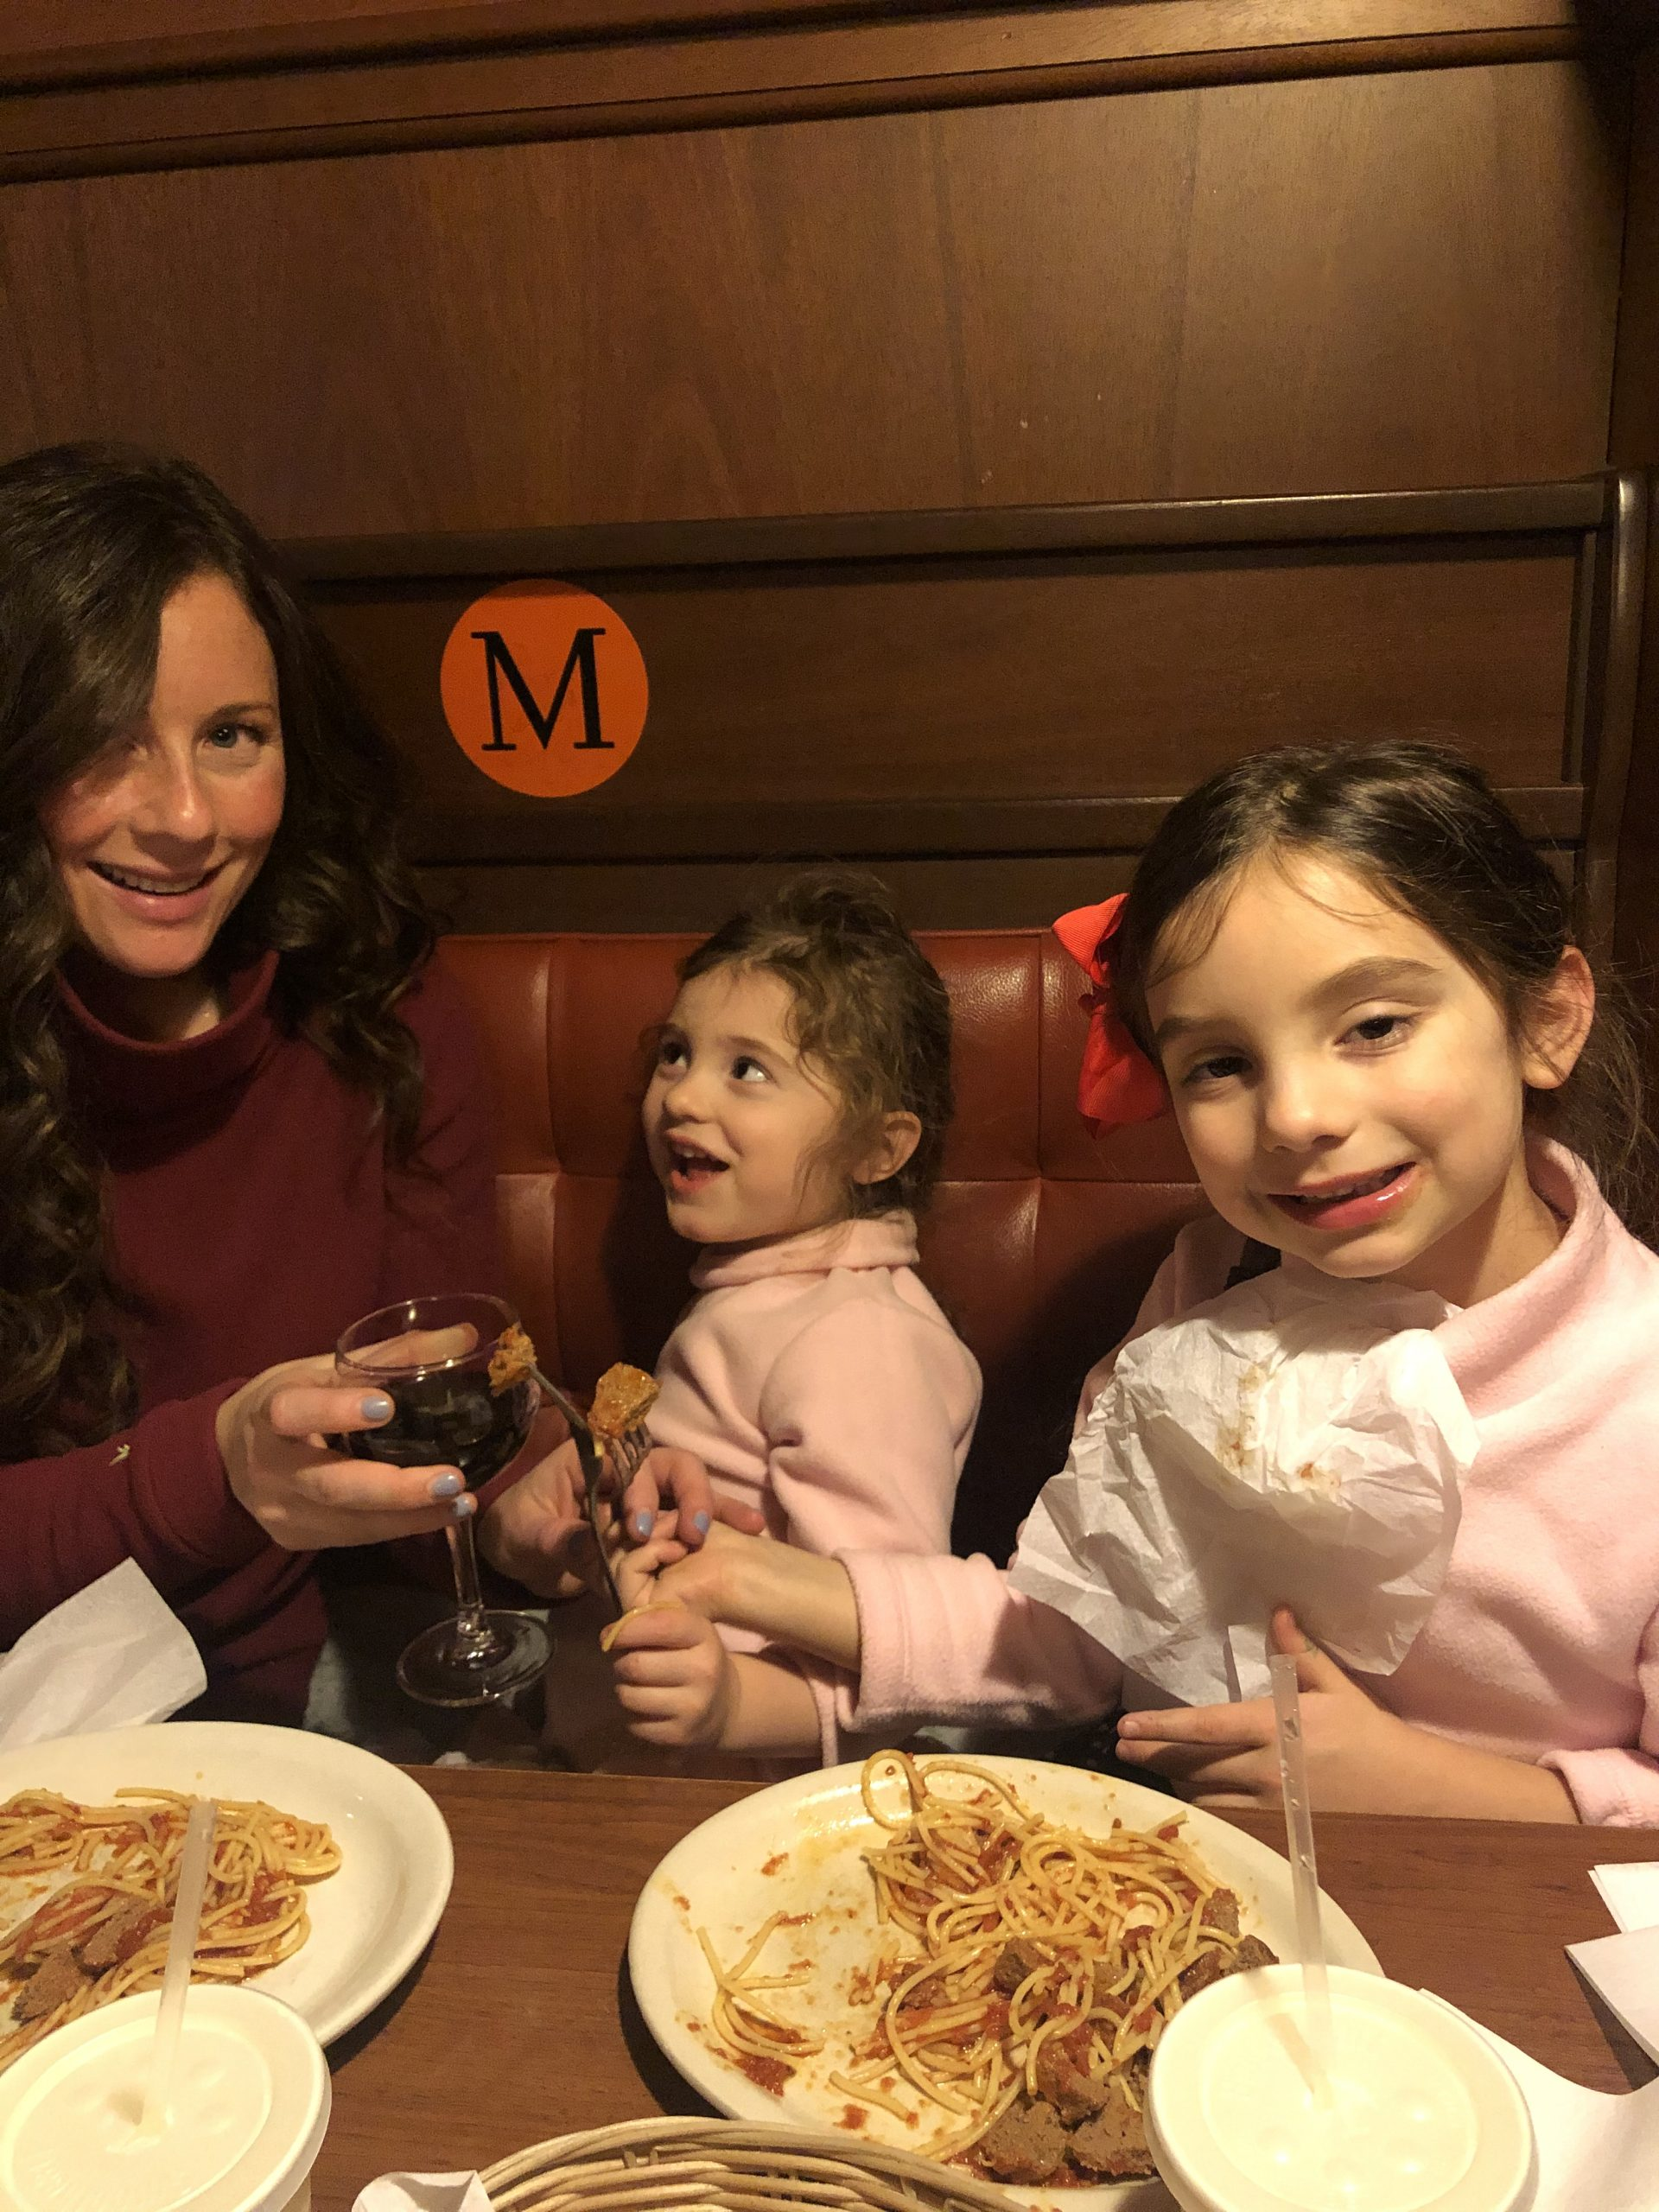 Mom and Daughters in Dudley Stephens at Modern Apizza